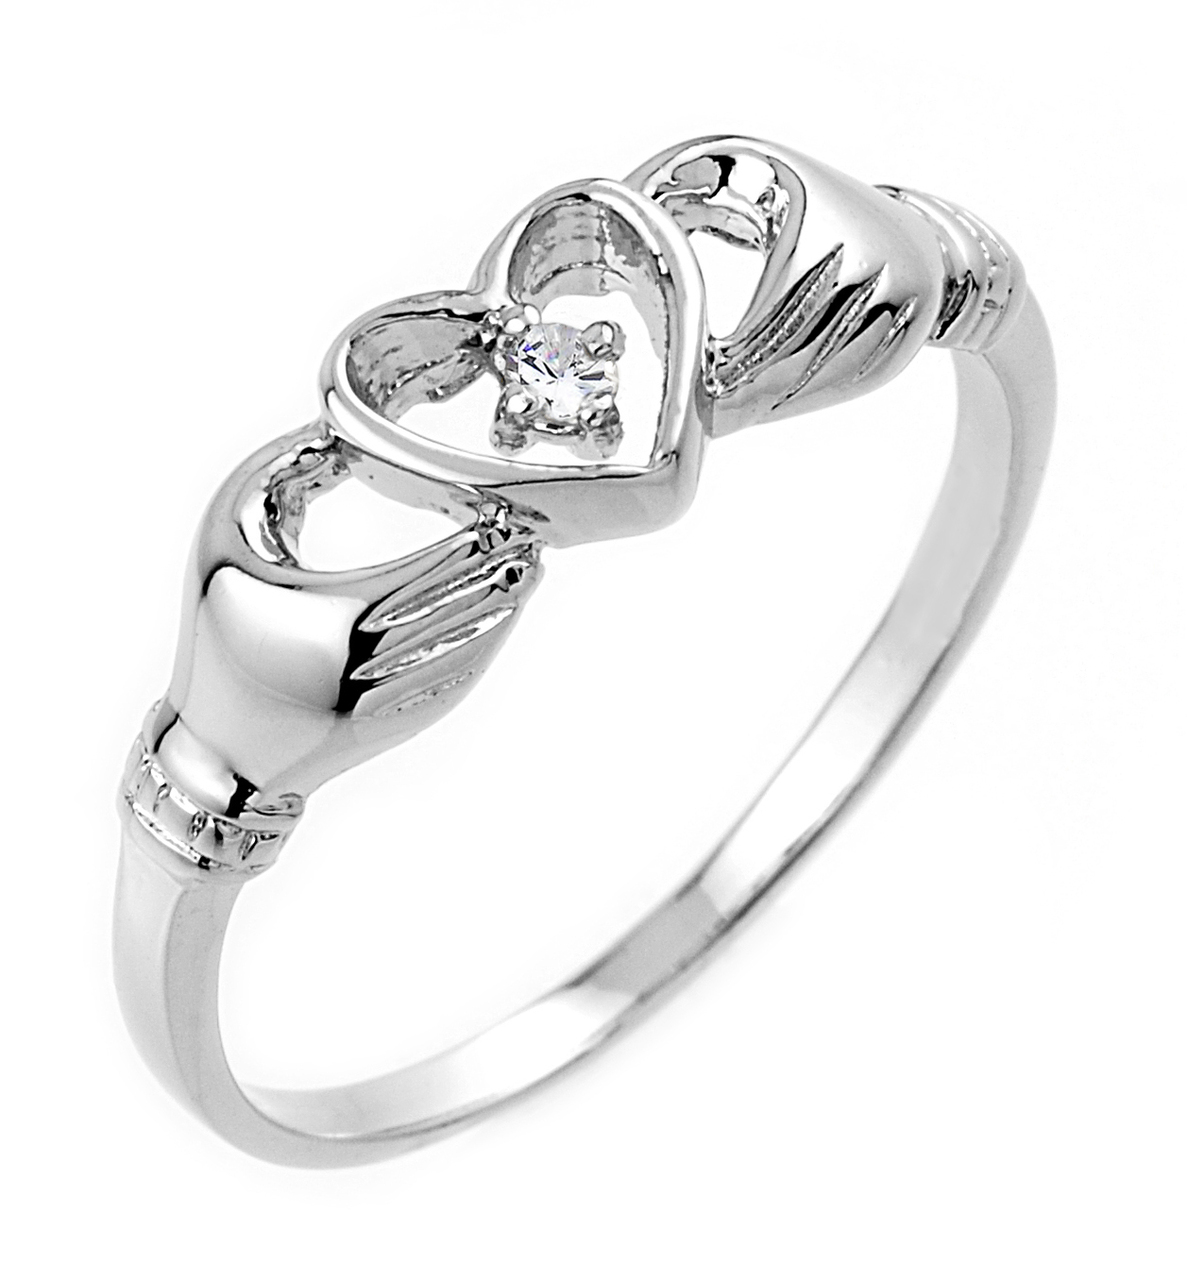 0.02ct Claddagh Ring in 14K White Gold